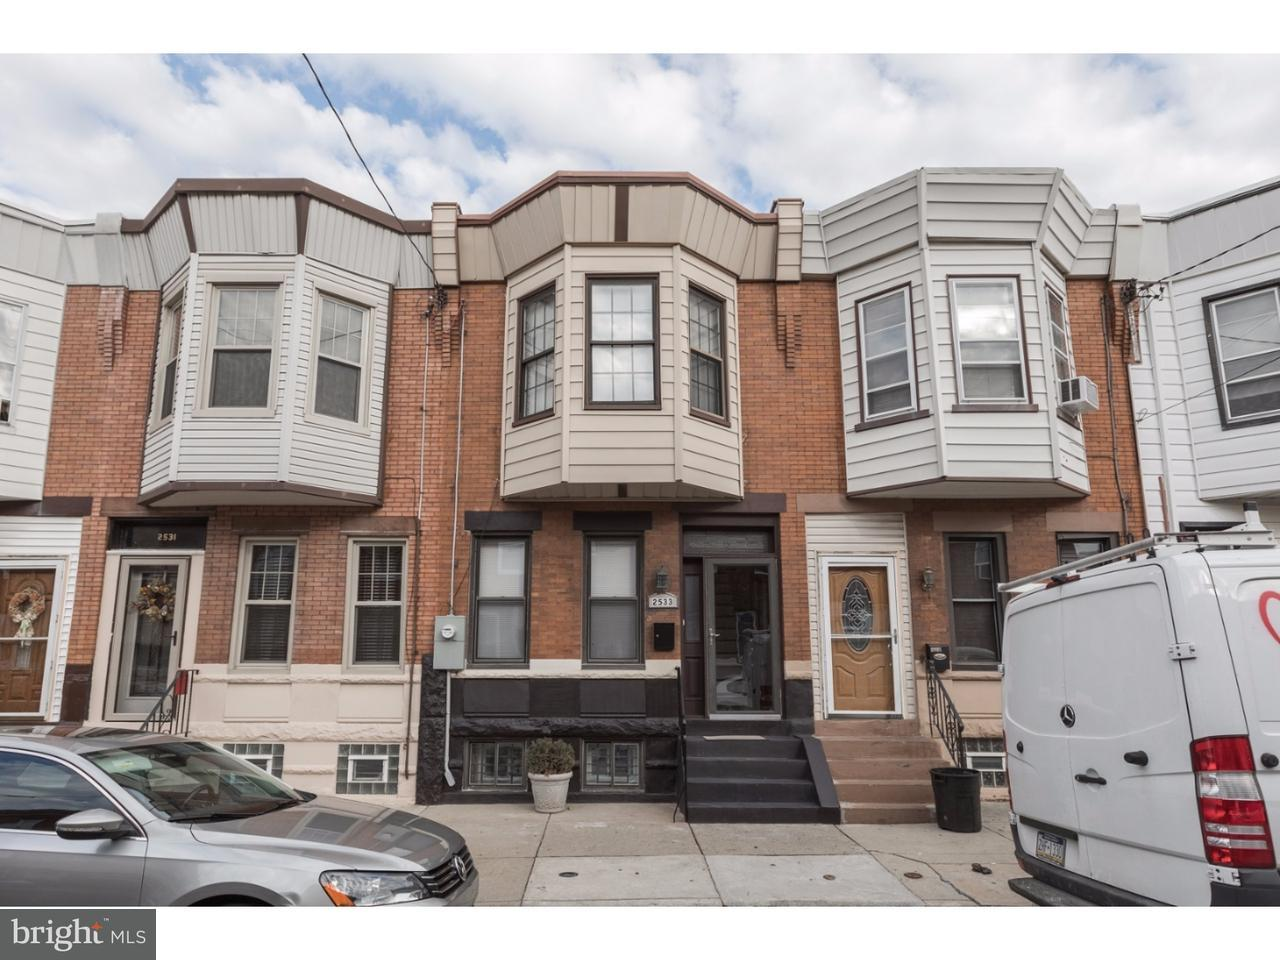 2533 E Indiana Ave Philadelphia Pa Mls 1004274125 Better Homes And Gardens Real Estate